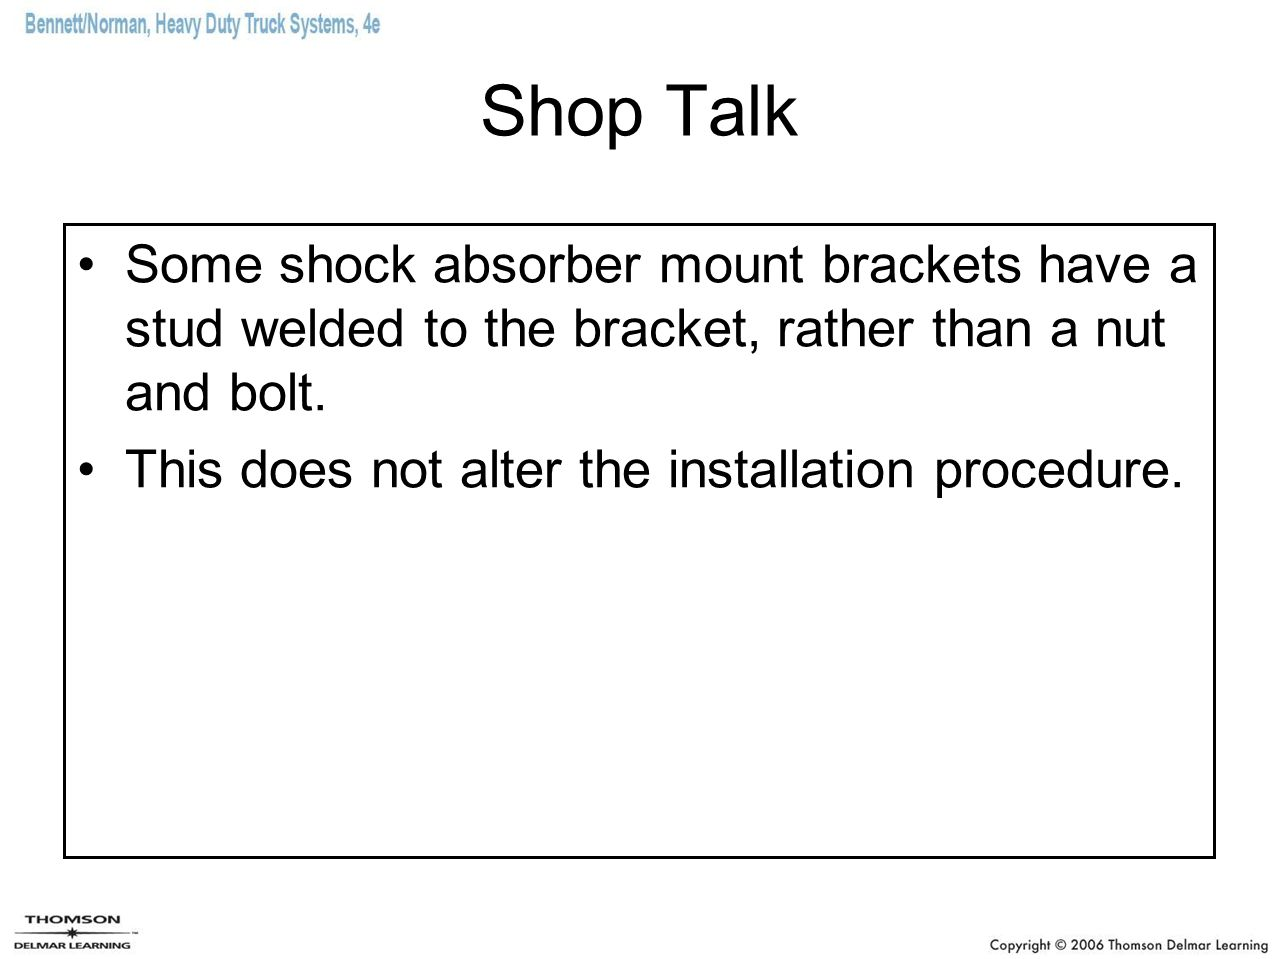 Shop Talk Some shock absorber mount brackets have a stud welded to the bracket, rather than a nut and bolt.